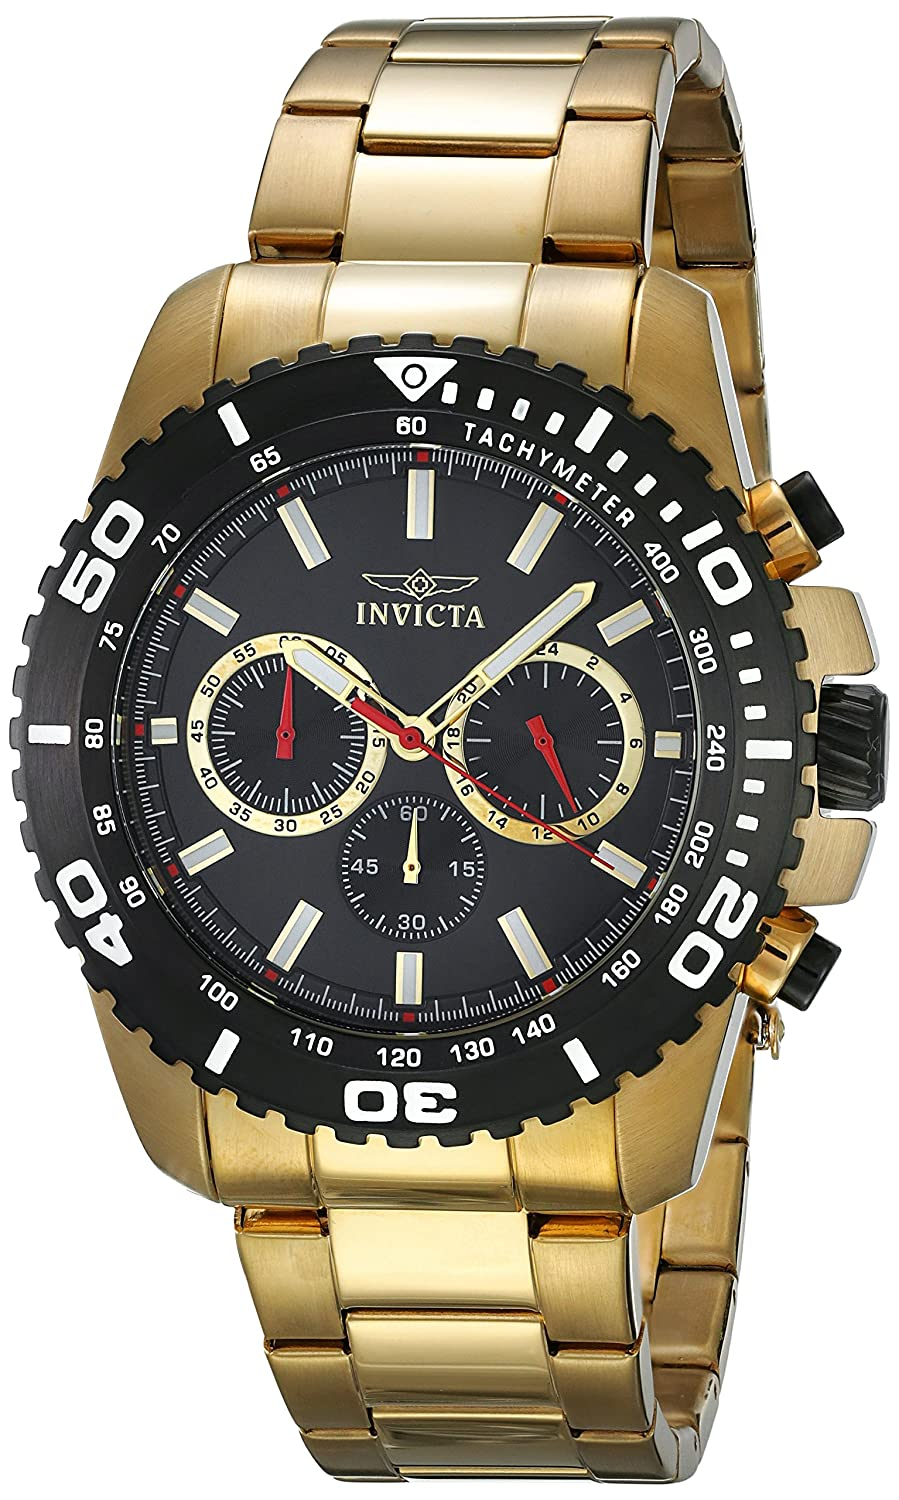 Invicta Men s Pro Diver Quartz Watch with Stainless-Steel Strap, Gold, 24 Model 19846